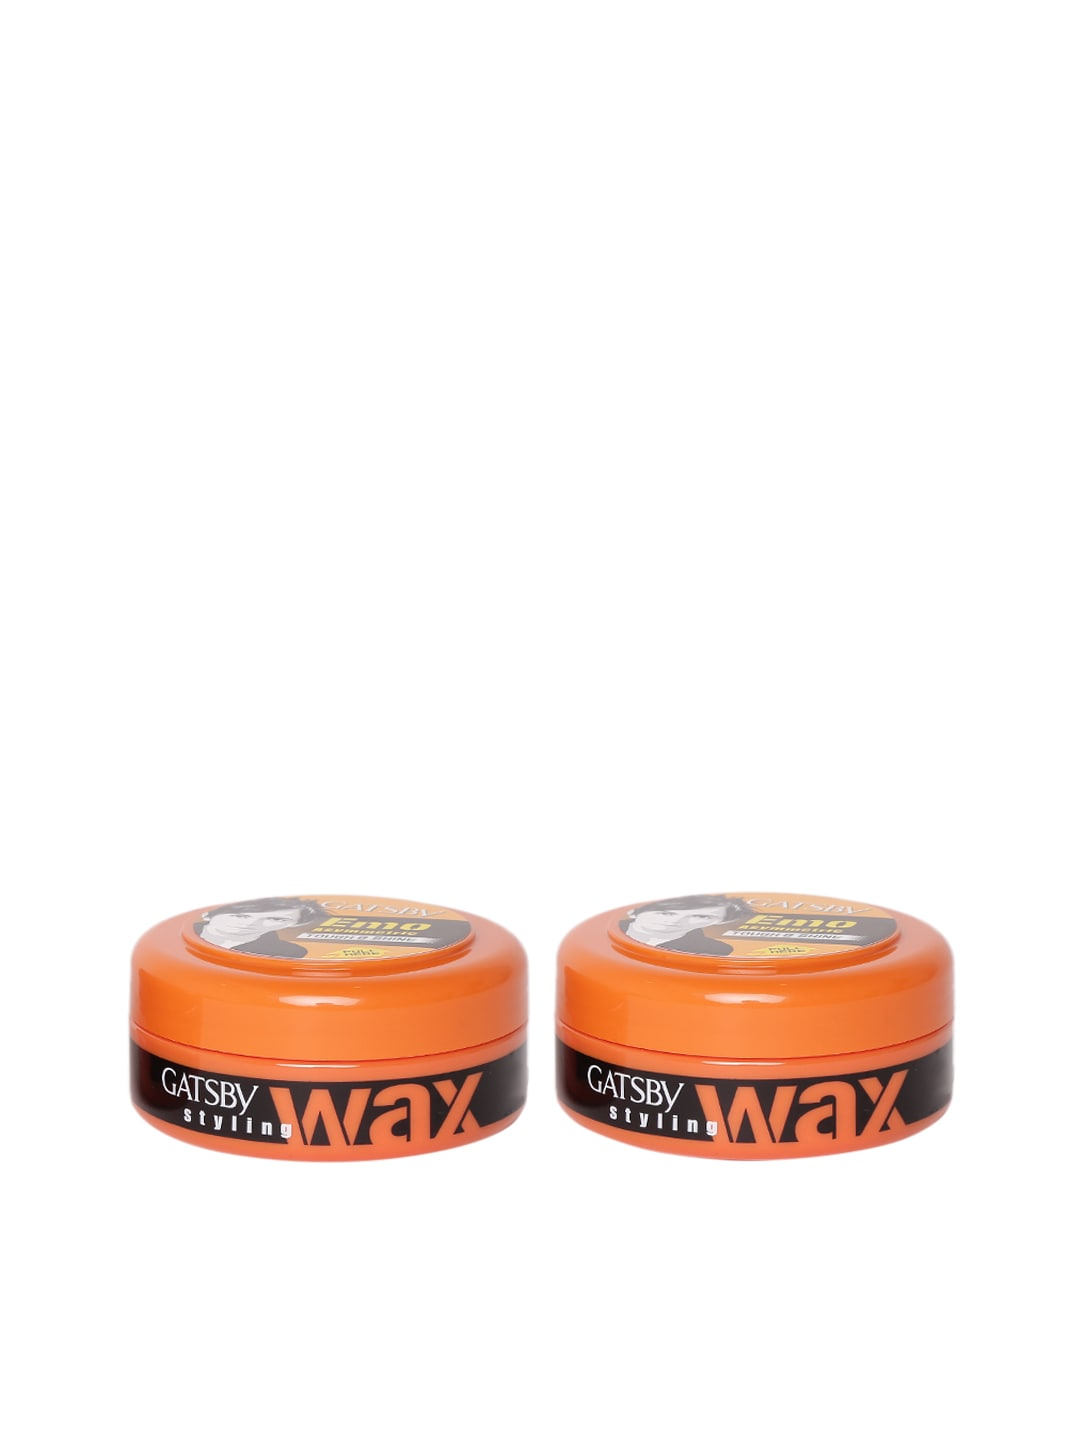 Gatsby Men Set of 2 Emo Asymmetric Tough & Shine Hair Styling Wax 150 g image